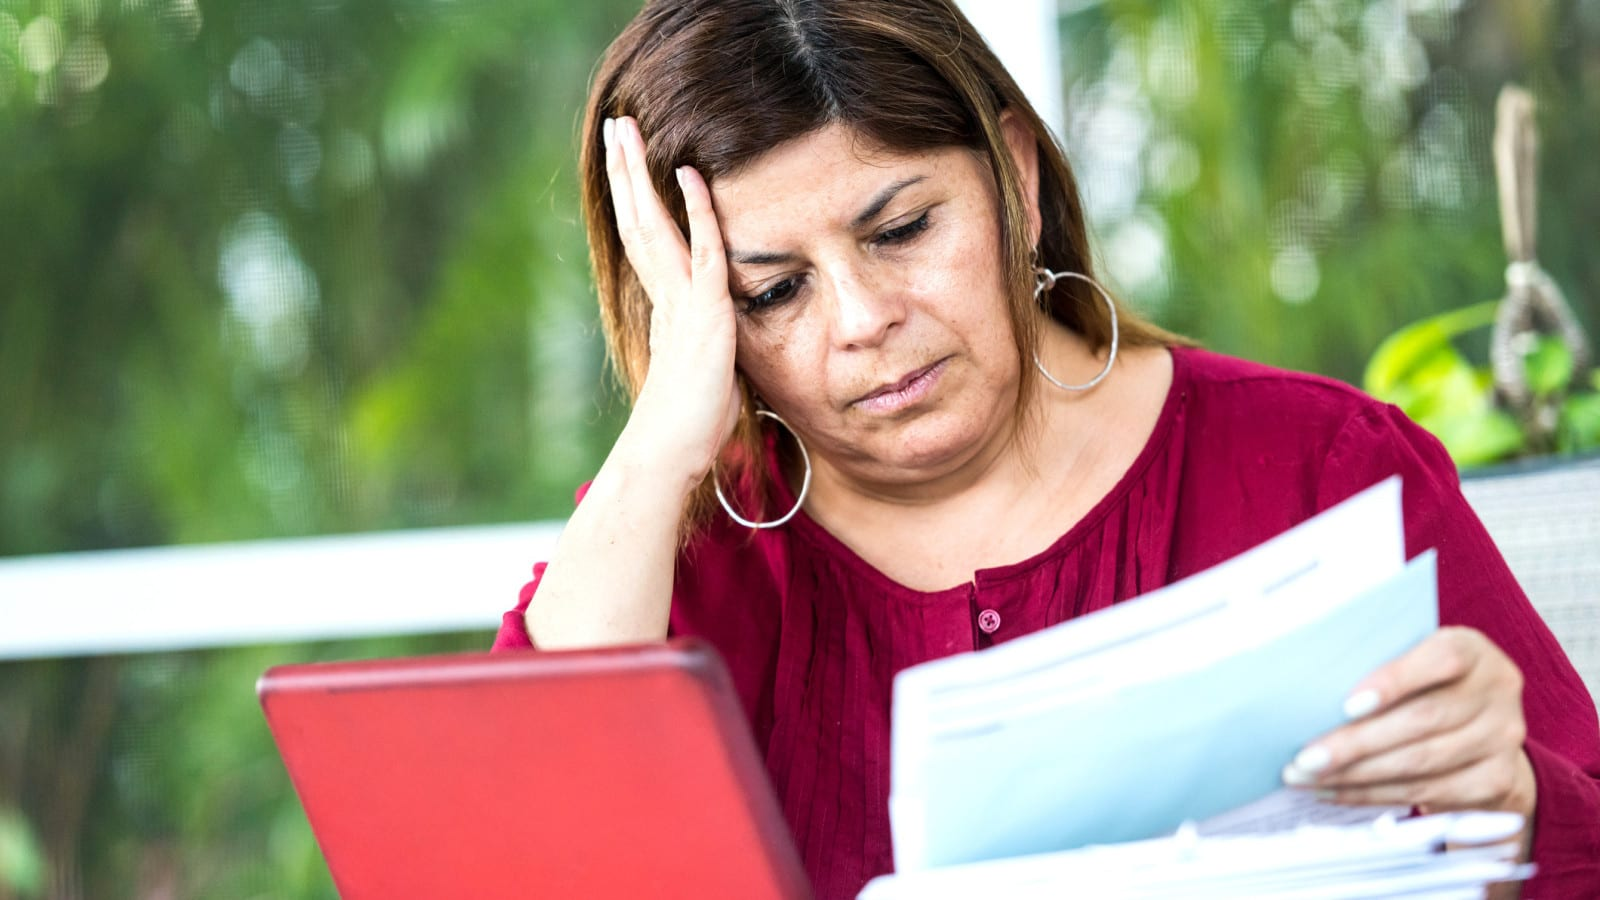 Injured Woman Reading A Denial Letter Stock Photo